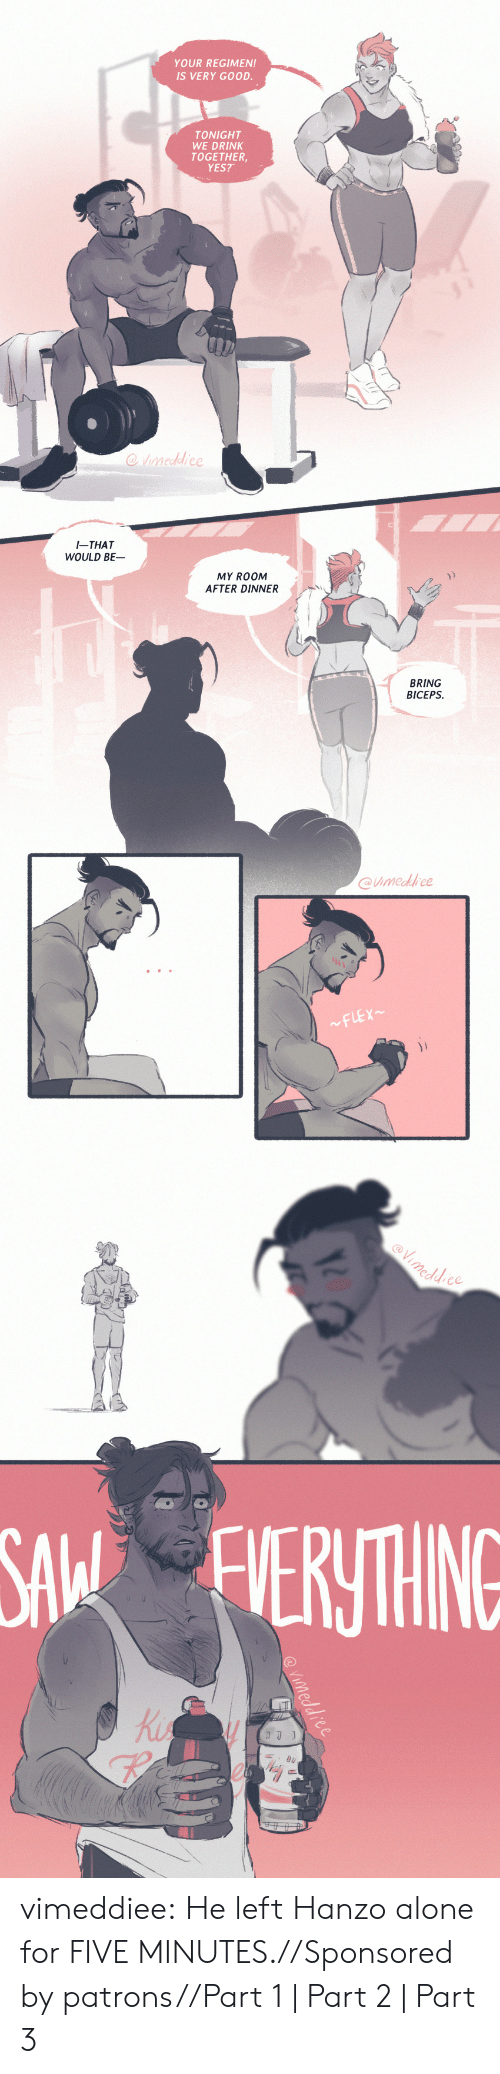 biceps: YOUR REGIMEN!  IS VERY GOOD.  TONIGHT  WE DRINK  TOGETHER  YES?   I-THAT  WOULD BE  MY ROOM  AFTER DINNER  兀  BRING  BICEPS  @imedfrce   eddce  SA ERTHING  Ki  re vimeddiee:  He left Hanzo alone for FIVE MINUTES.//Sponsored by patrons//Part 1 | Part 2| Part 3